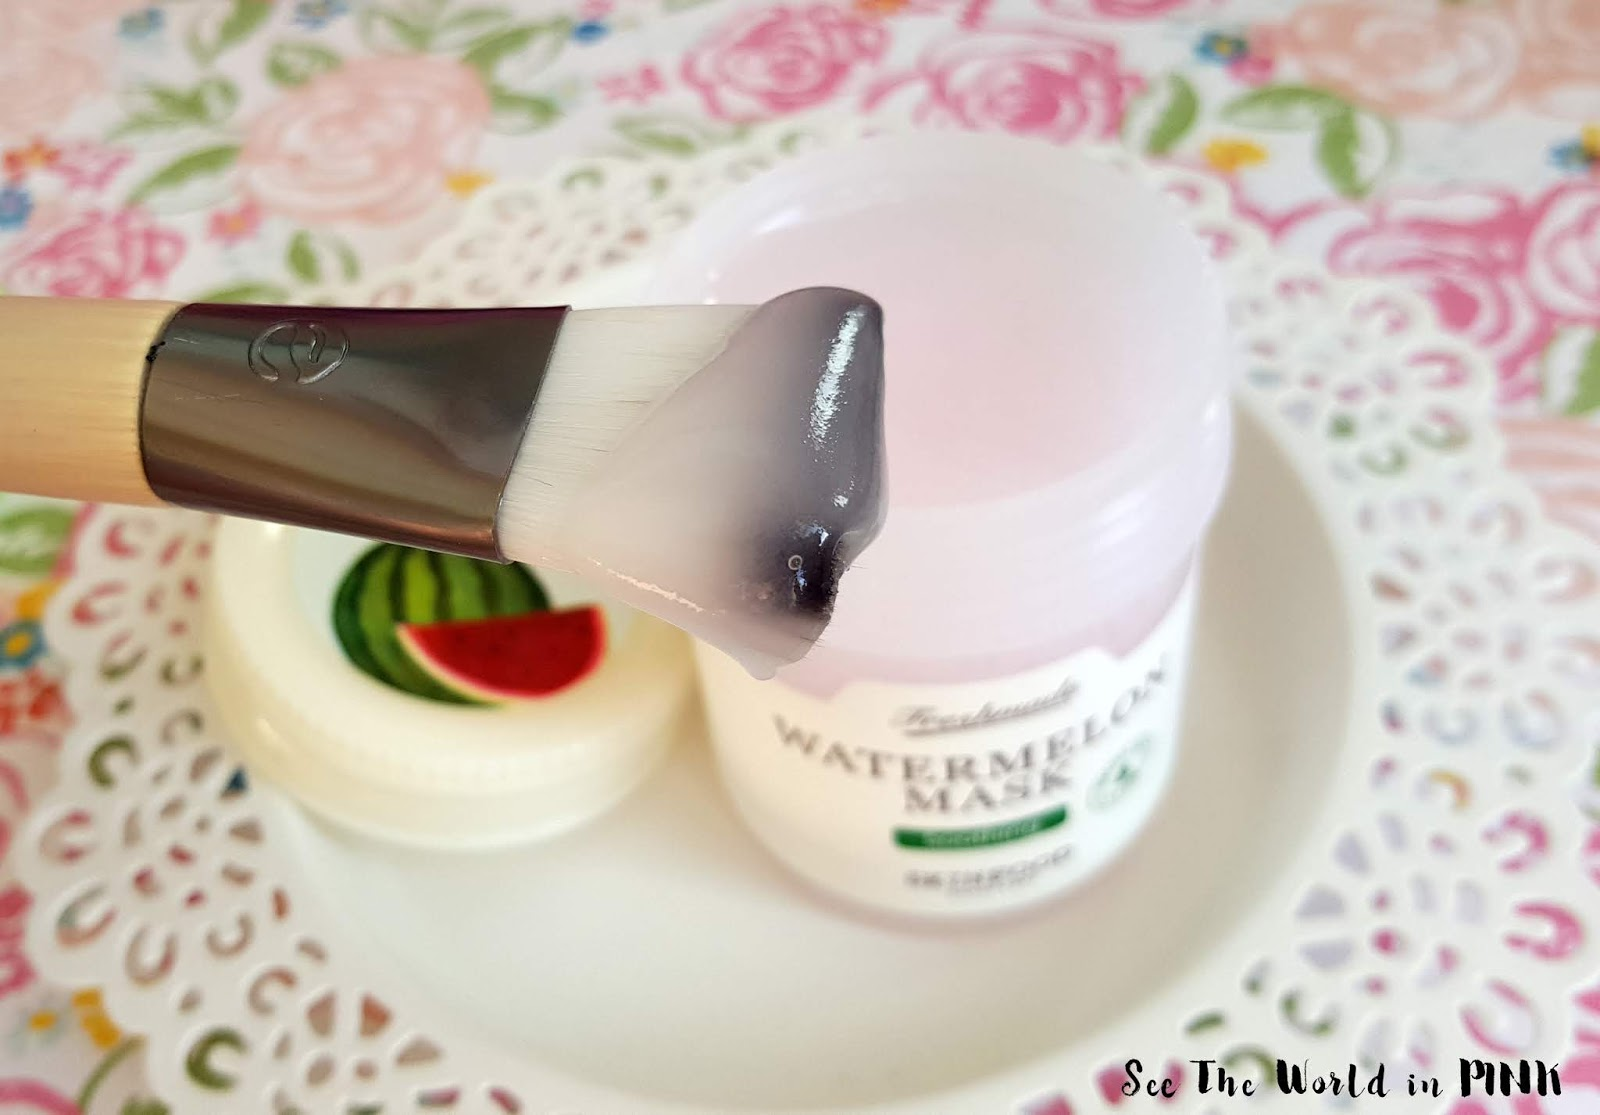 Mask Wednesday - Skinfood Freshmade Watermelon Mask and Ecotools Facial Mask Mates!